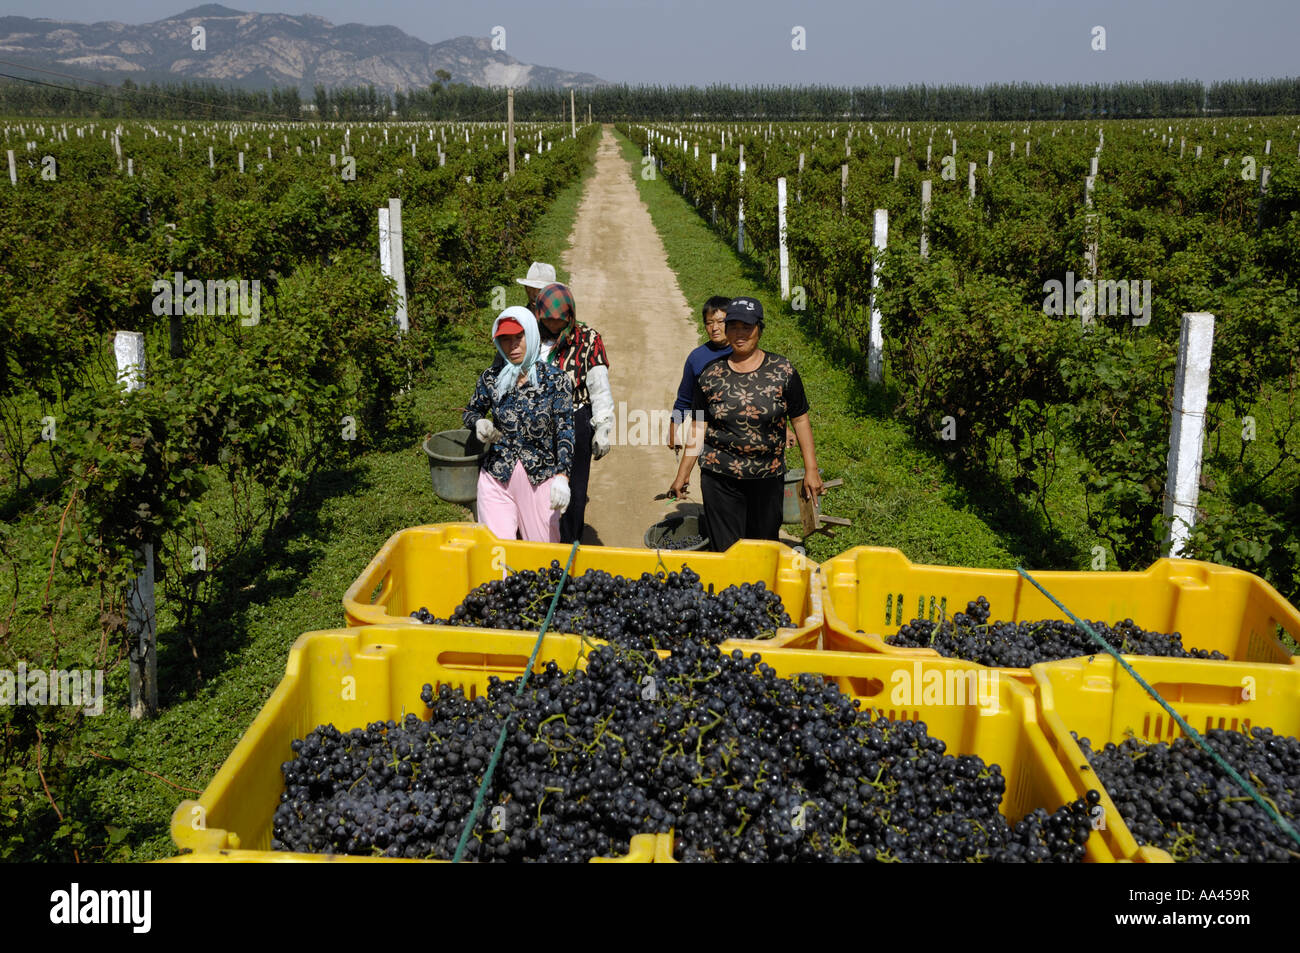 Chinese farmers pick grapes in a vineyard in Changli county, Hebei, China 28 Sep 2006 Stock Photo